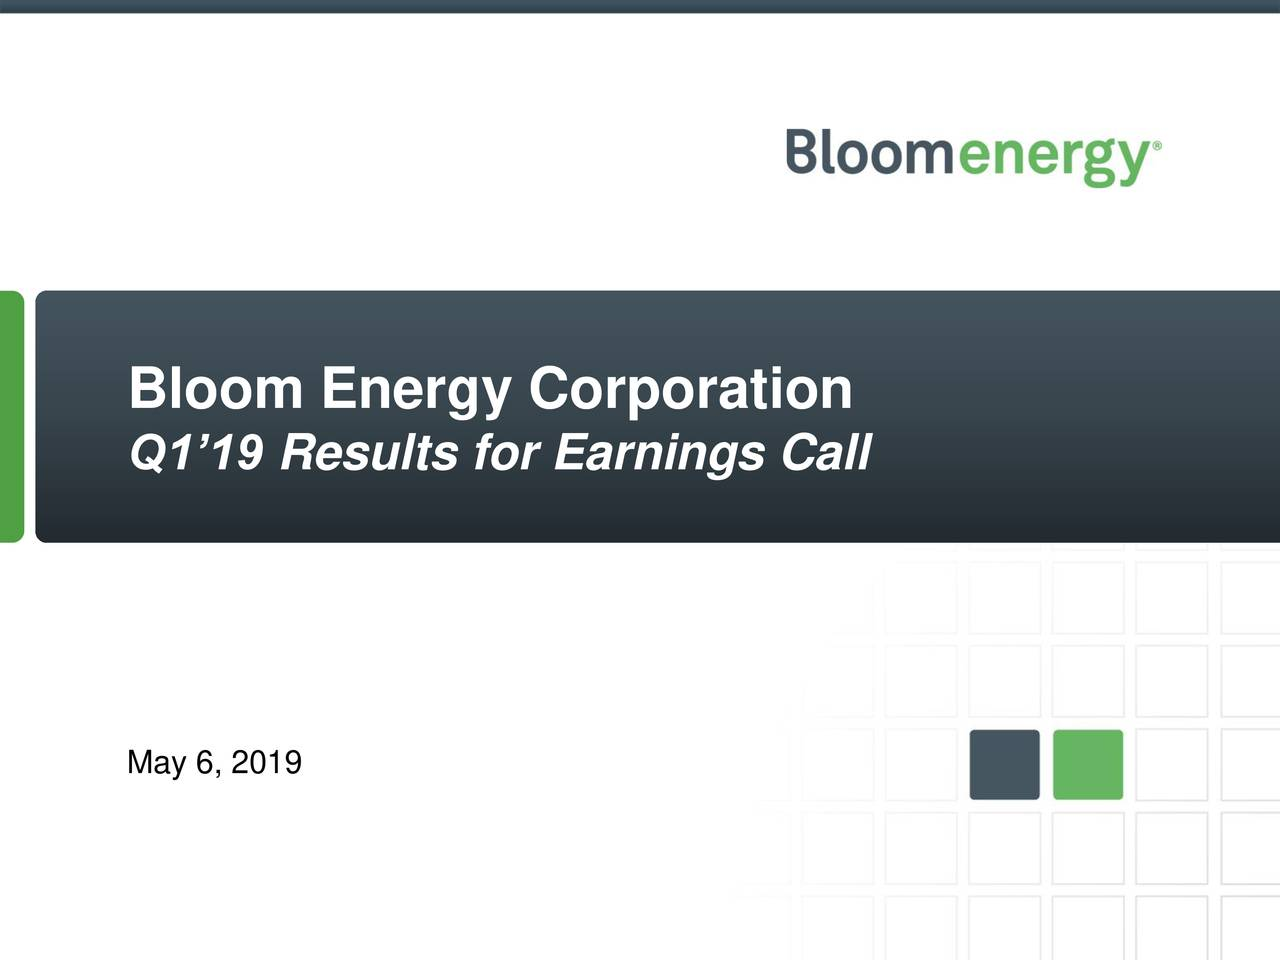 Q1'19 Results for Earnings Call May 6, 2019